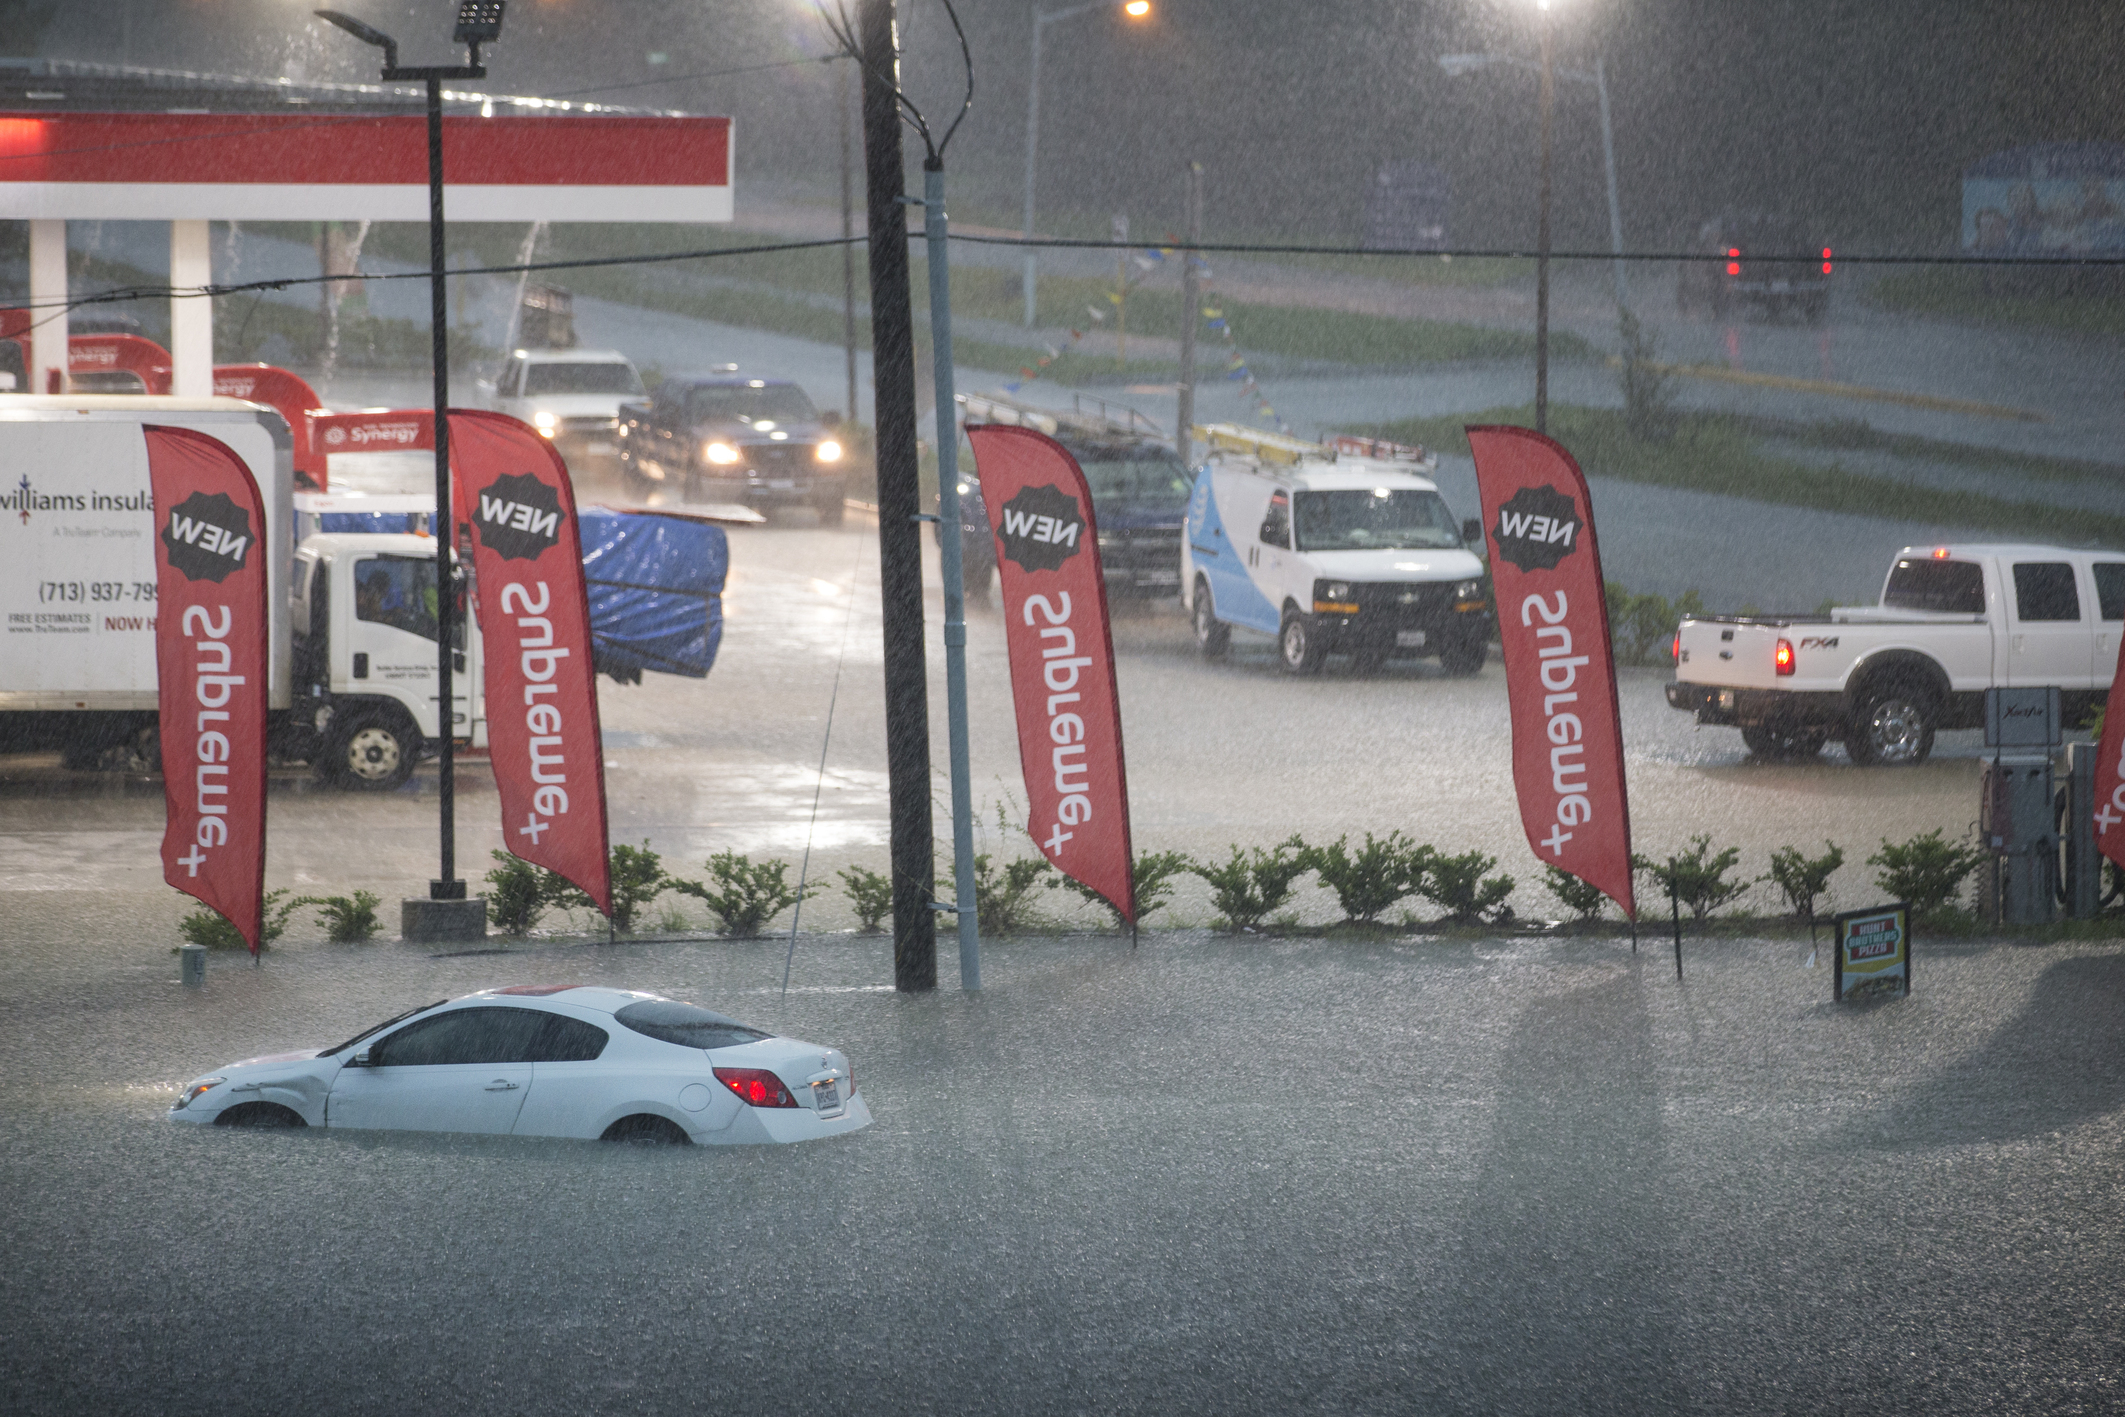 The Latest: Conditions in Houston improve as Imelda departs